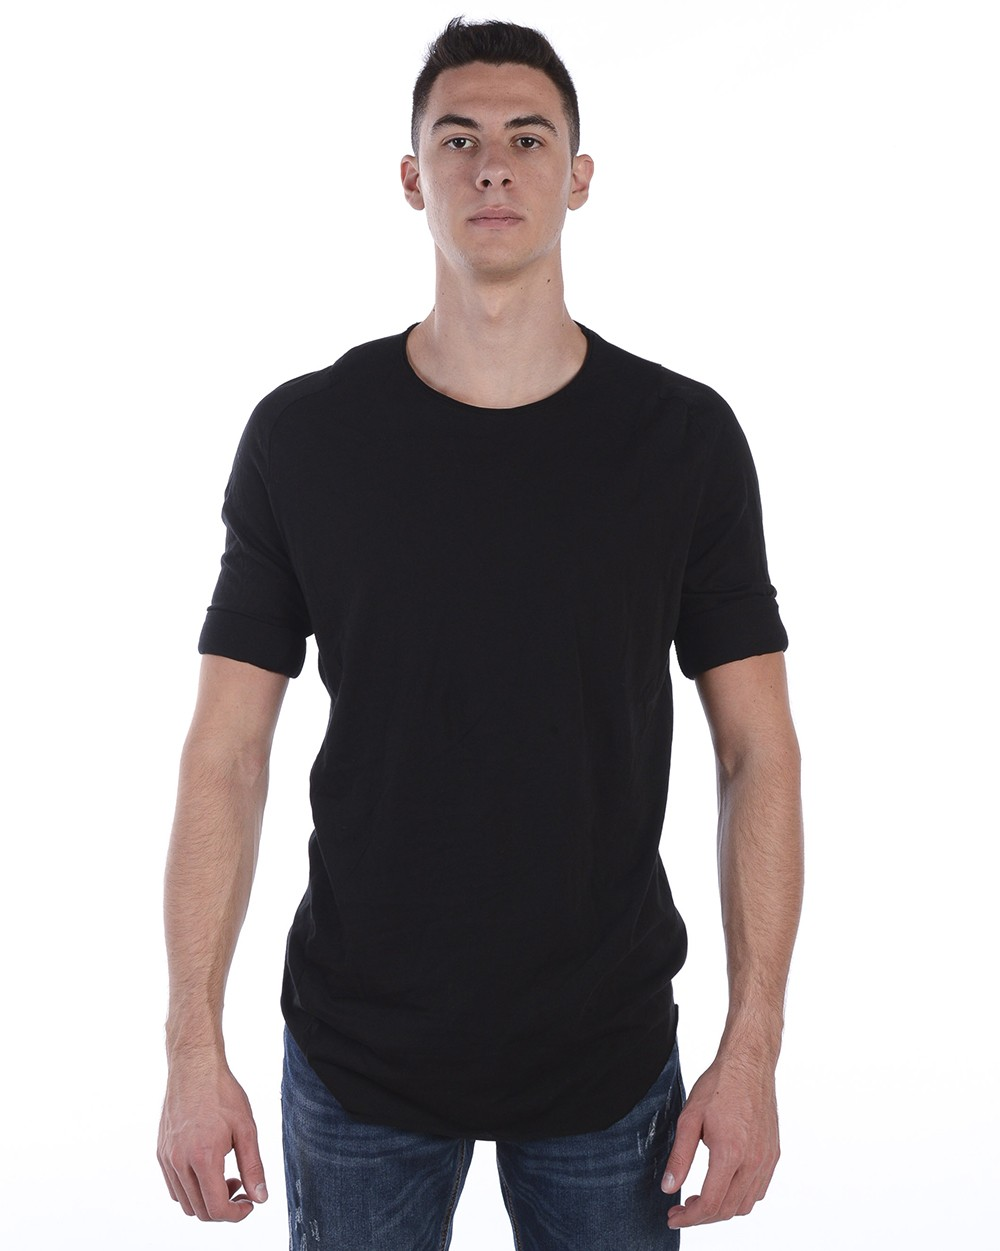 IMPERIAL T-SHIRT T441WAGL